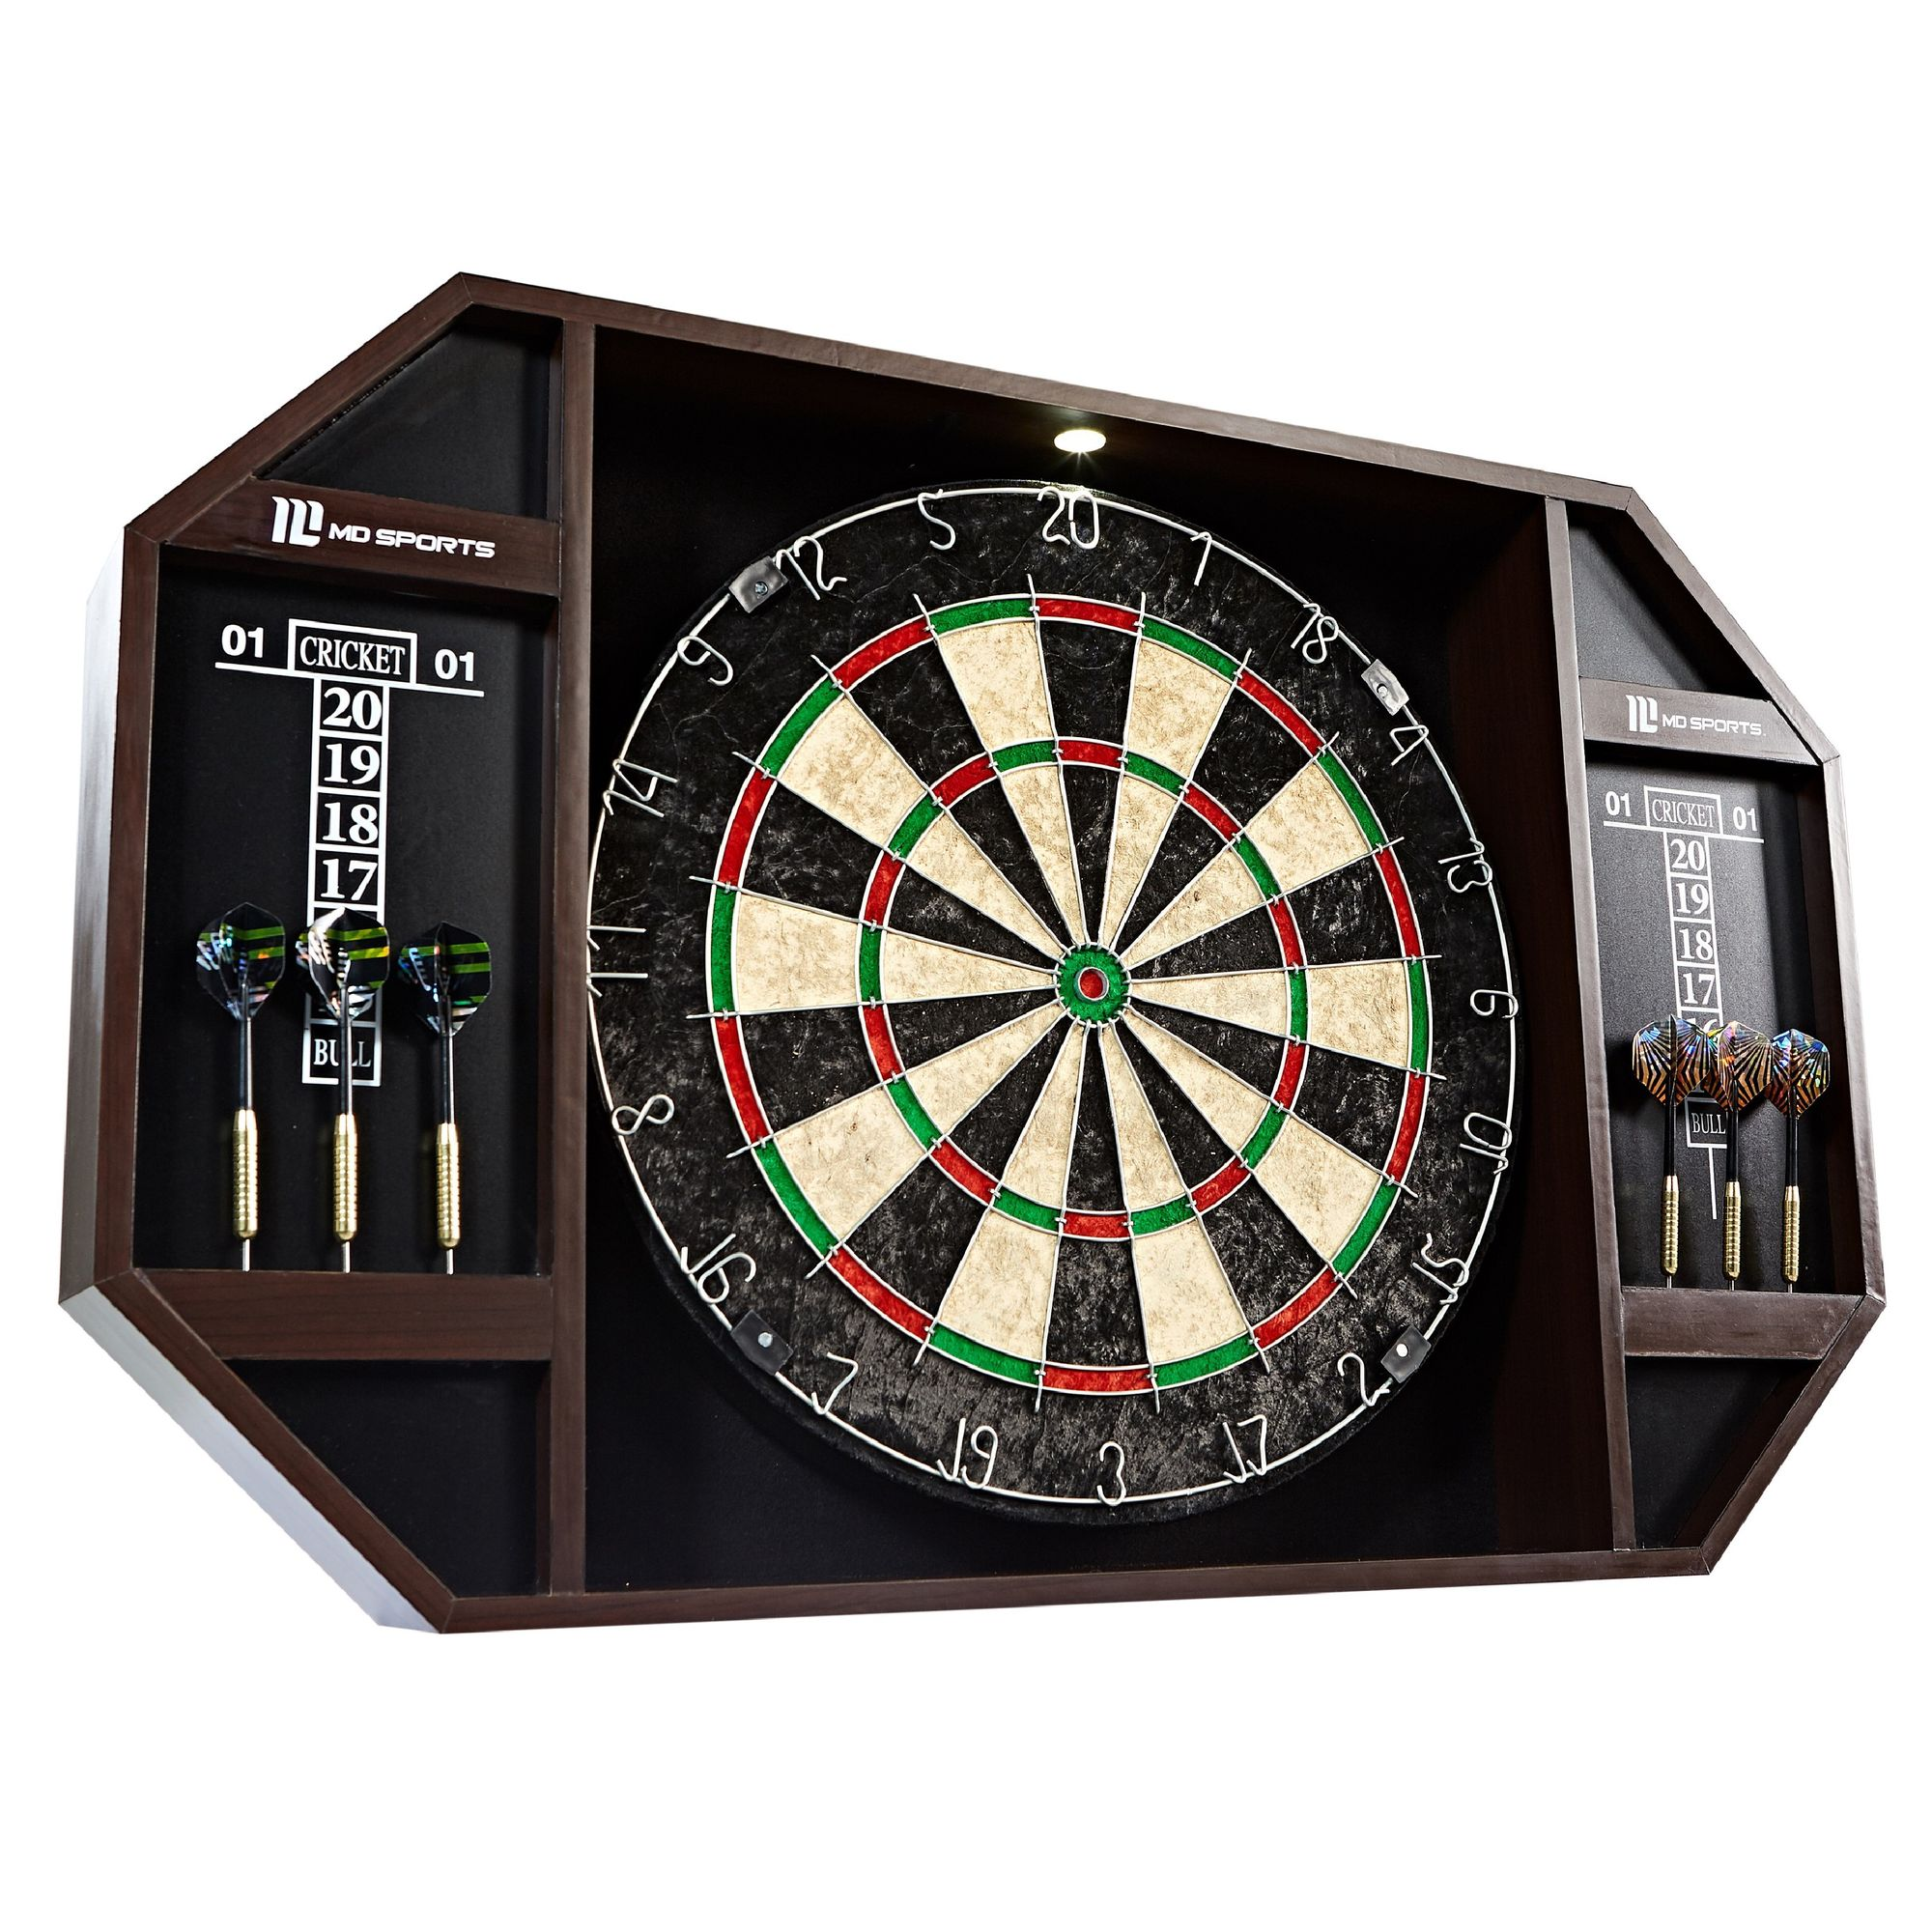 MD Sports Bristle Dartboard Cabinet Set with LED Light and 6 Steel Tip Darts, Self-healing Sisal board, Pre-assembled